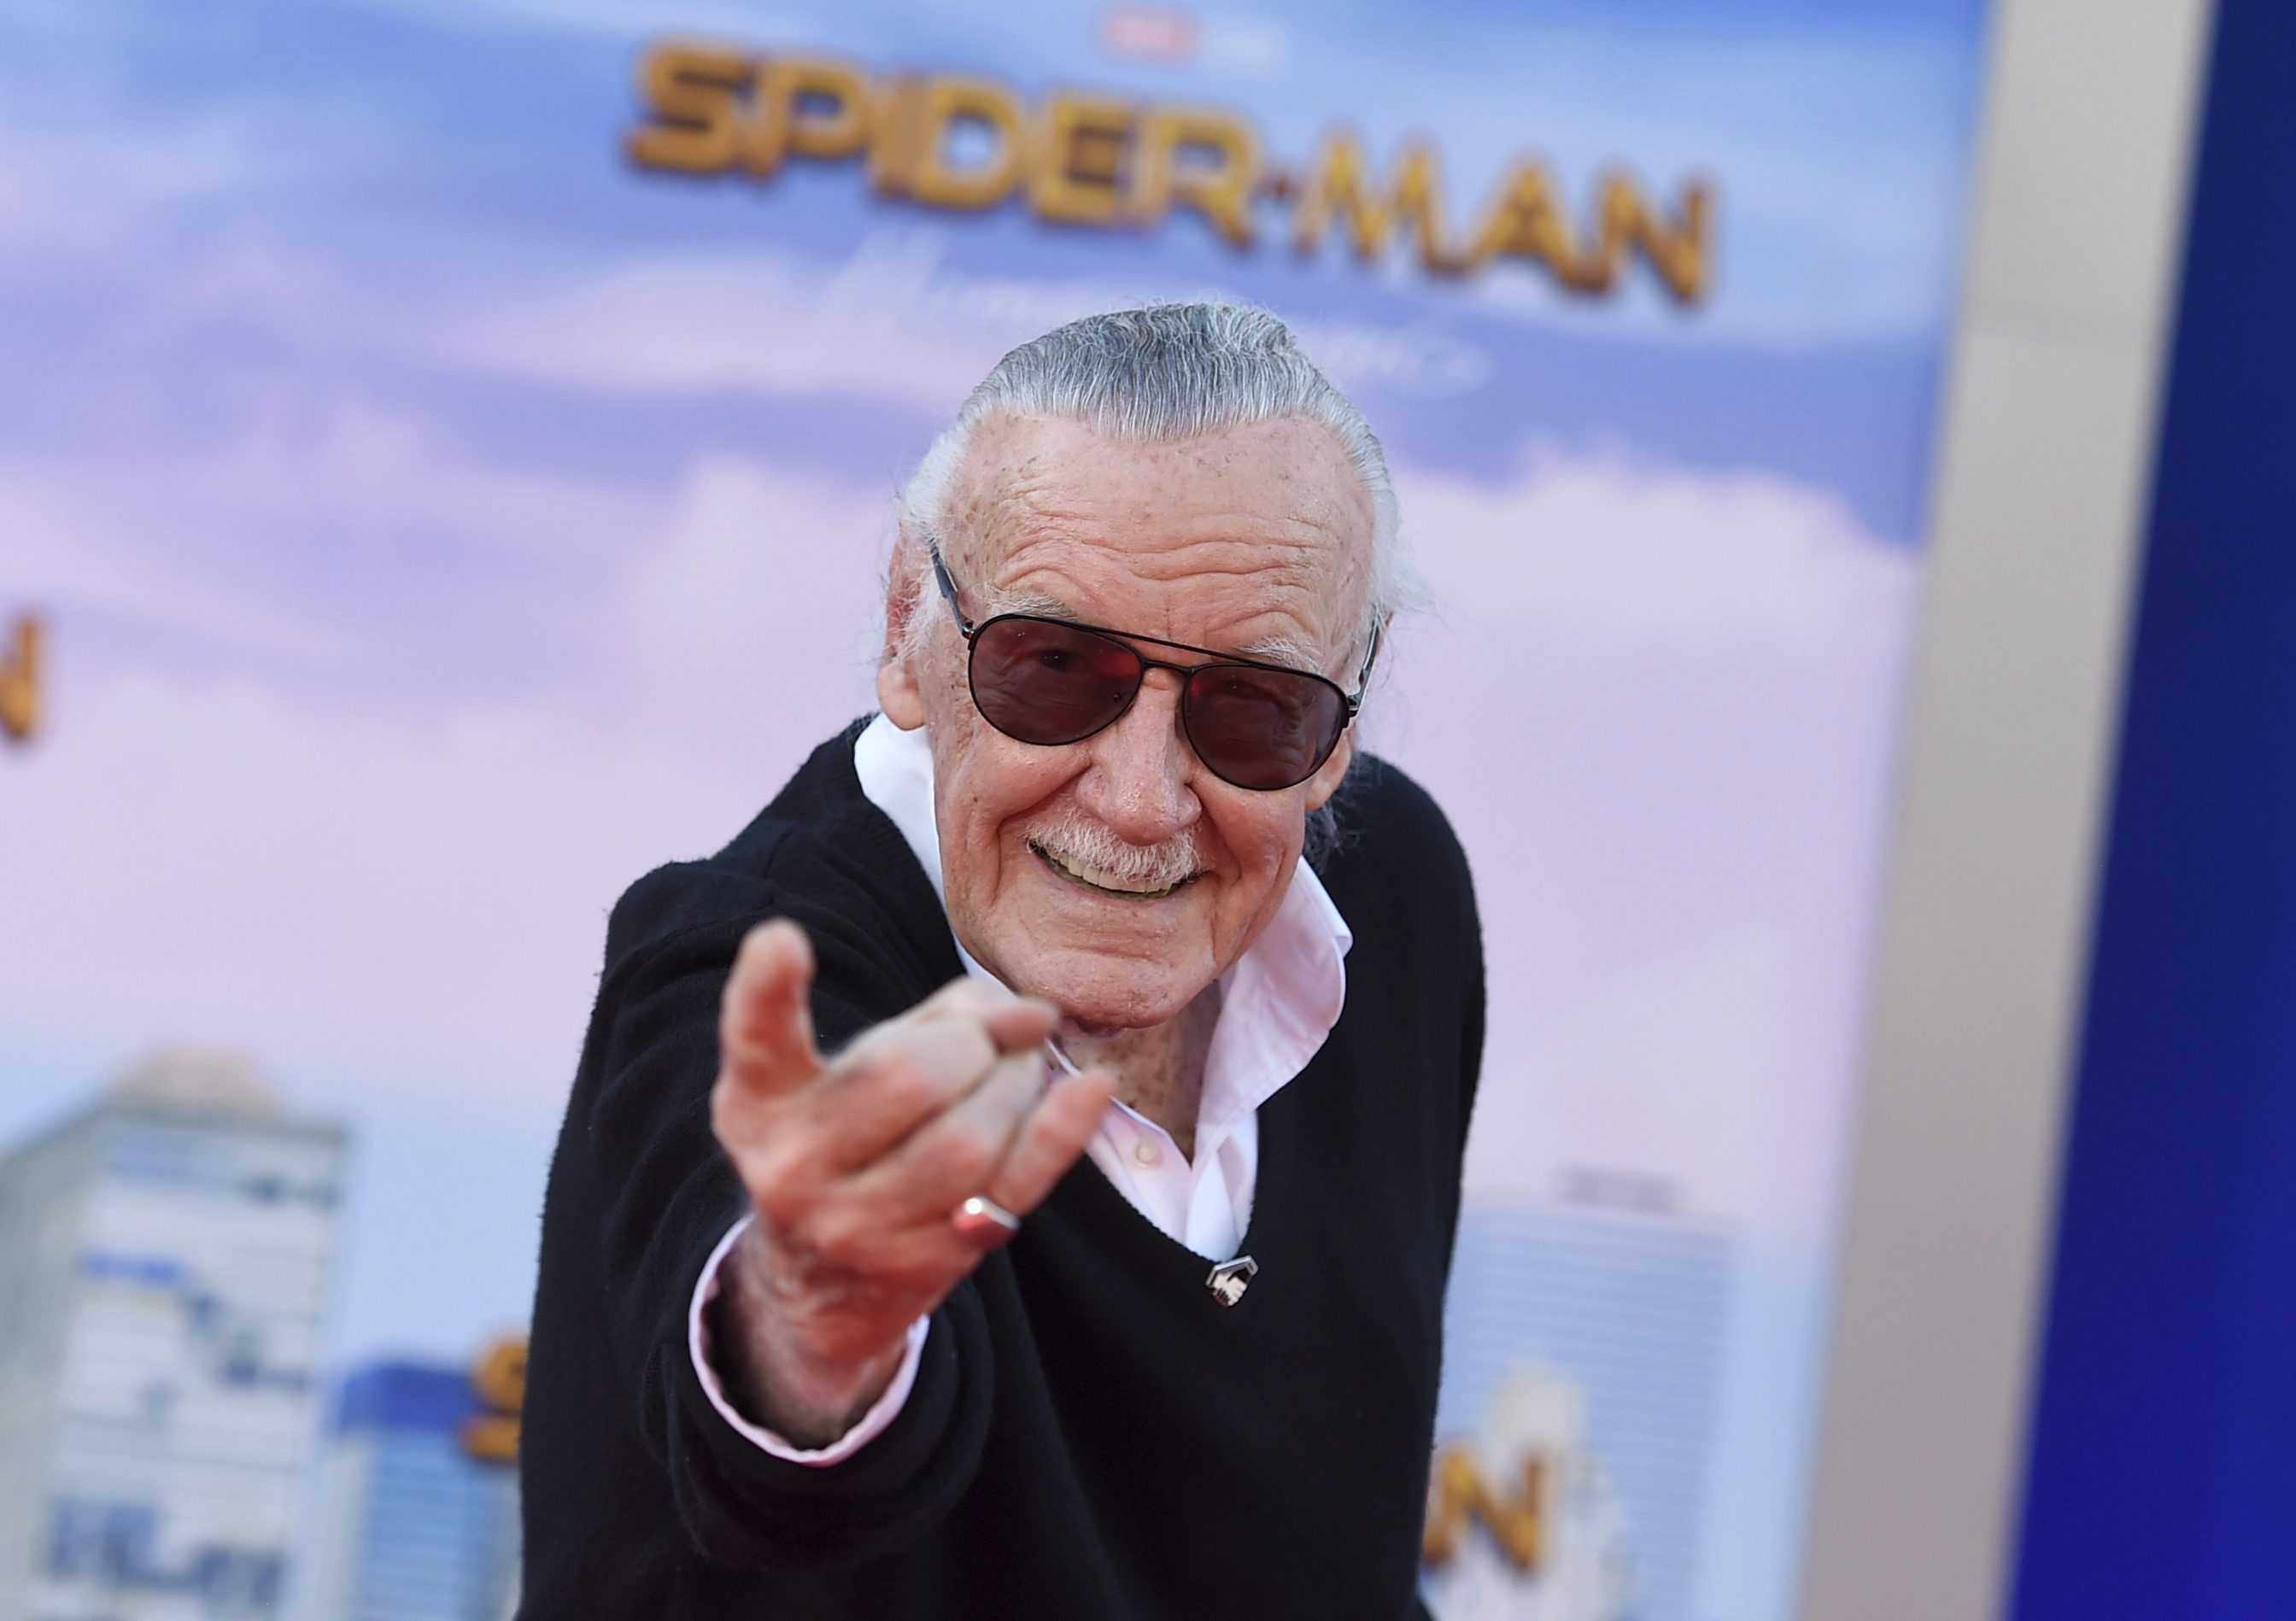 Stan Lee dies at 95 after year of medical issues